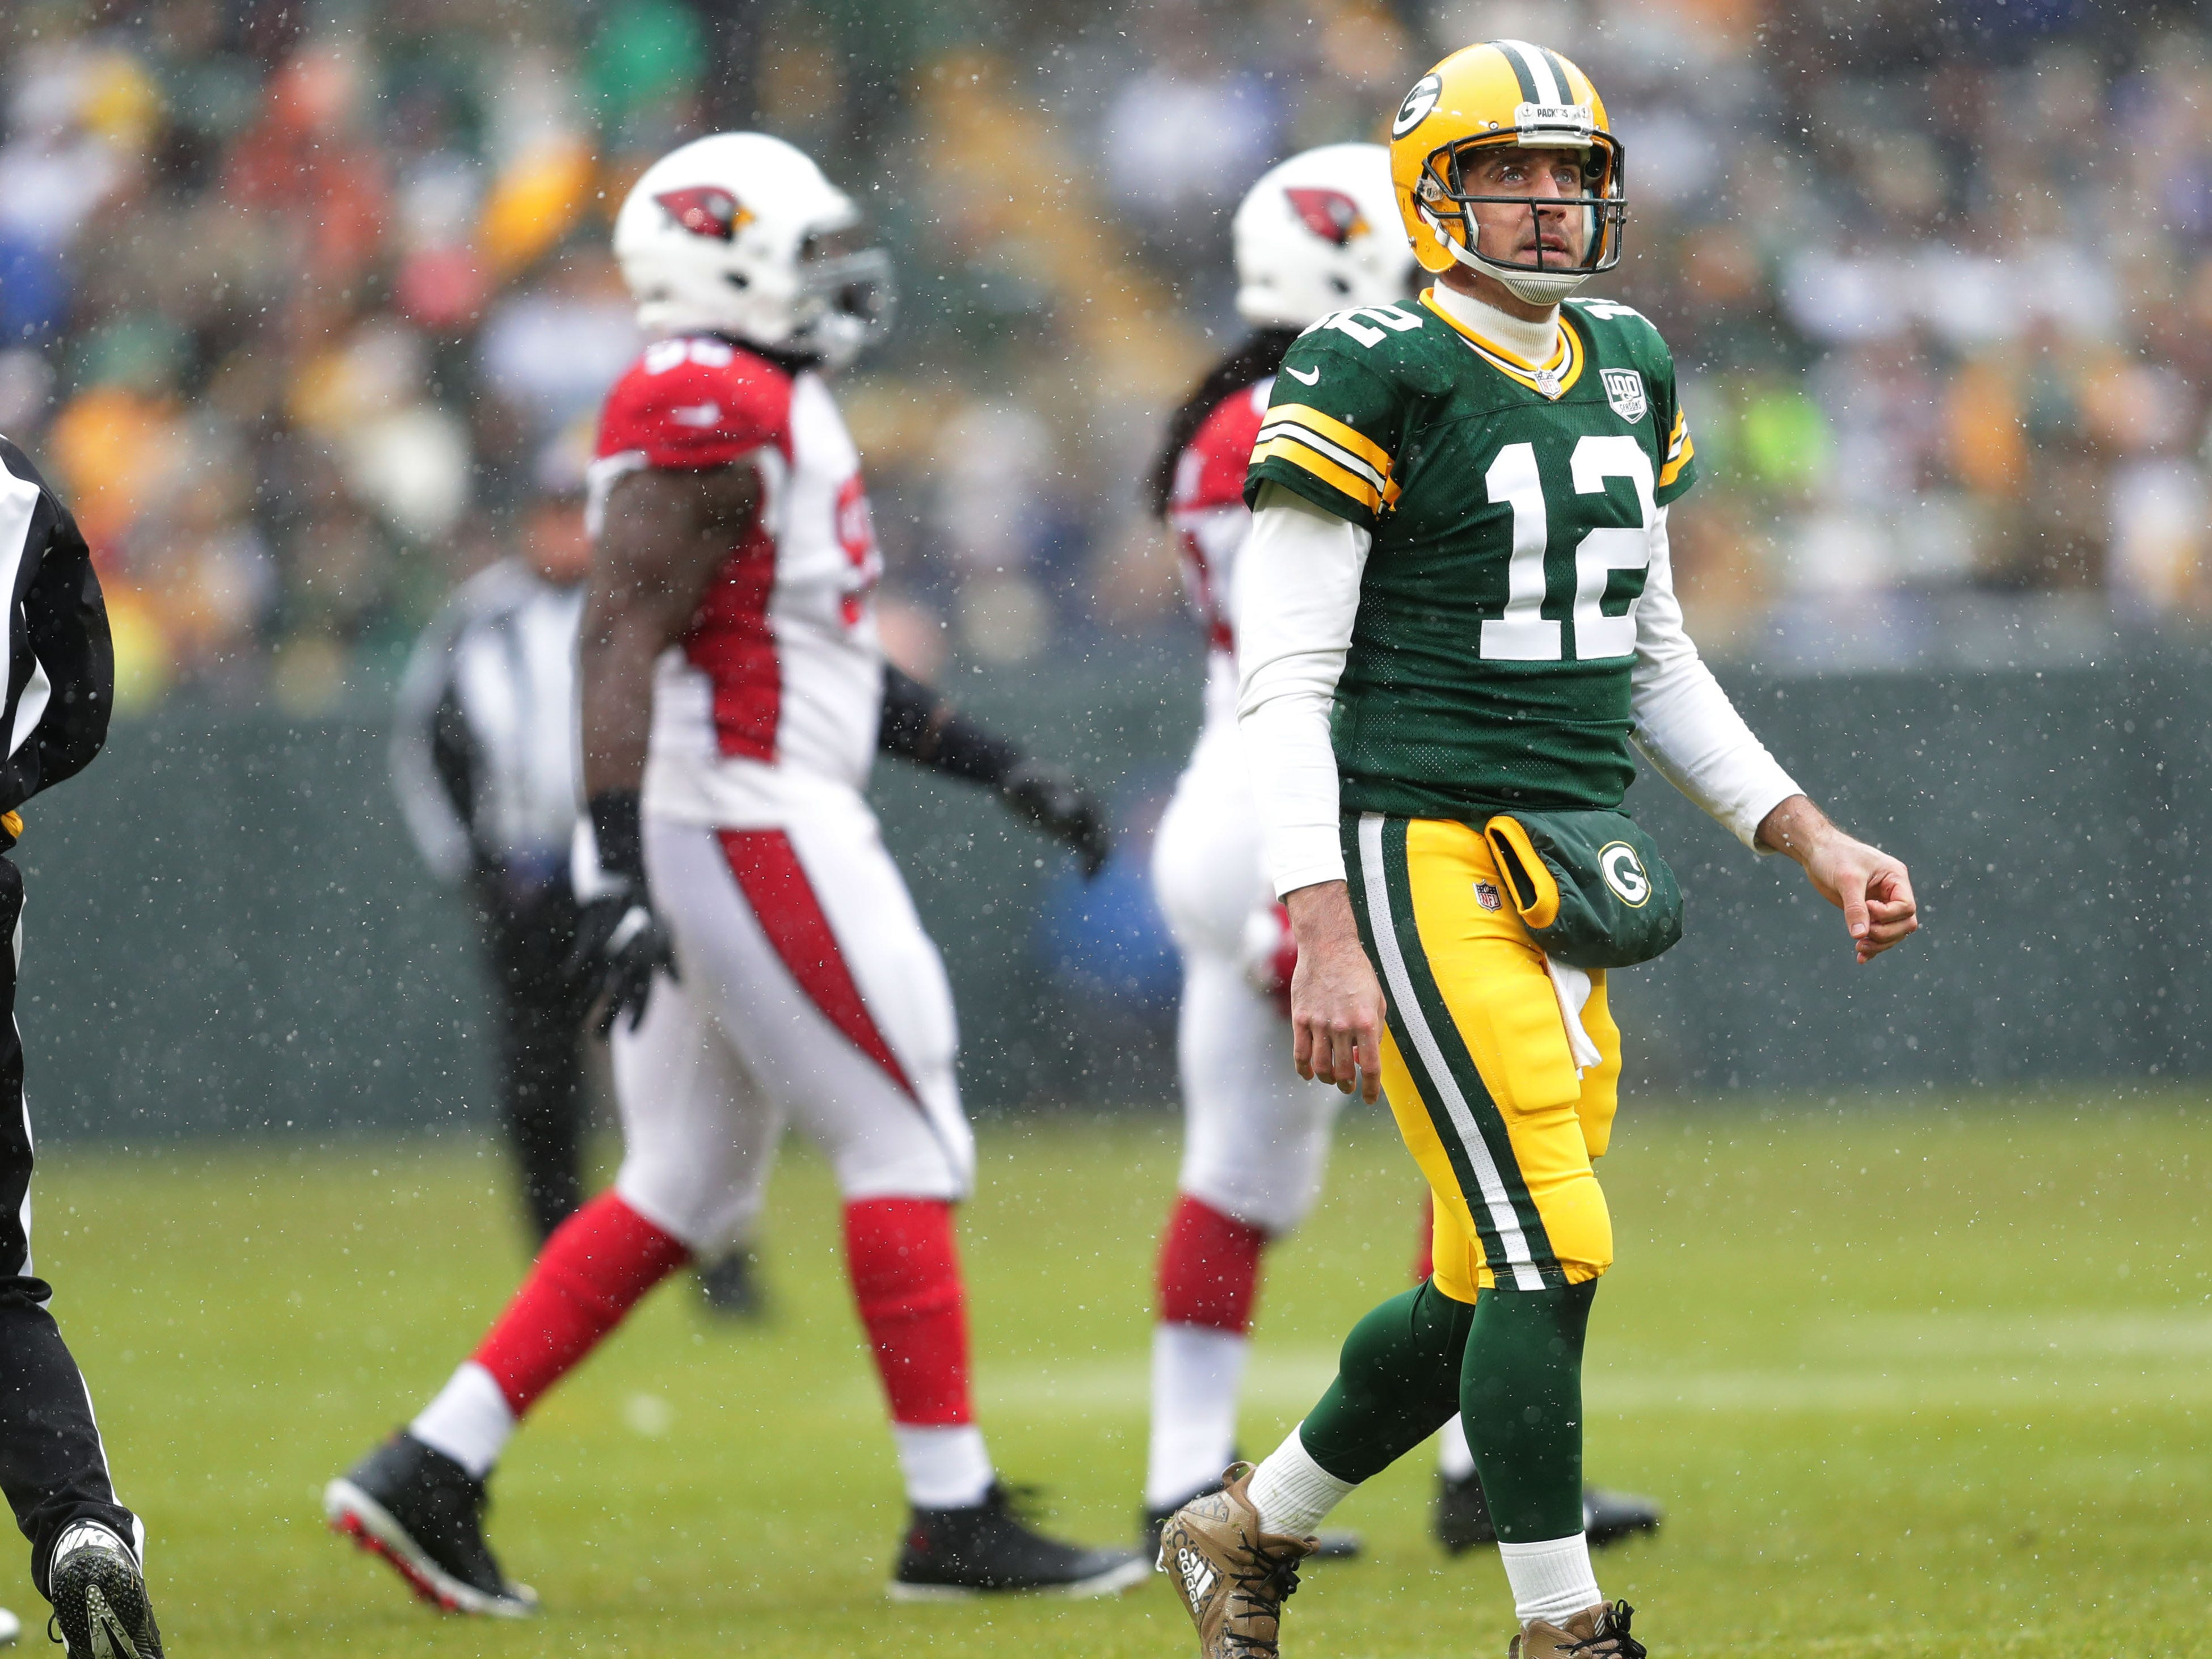 Green Bay Packers quarterback Aaron Rodgers (12) walks off the field after a not converting on 3rd down during the 1st quarter of Green Bay Packers game against the Arizona Cardinals game Sunday, December 2, 2018 at Lambeau Field in Green Bay, Wis. Mike De Sisti / USA TODAY NETWORK-Wis